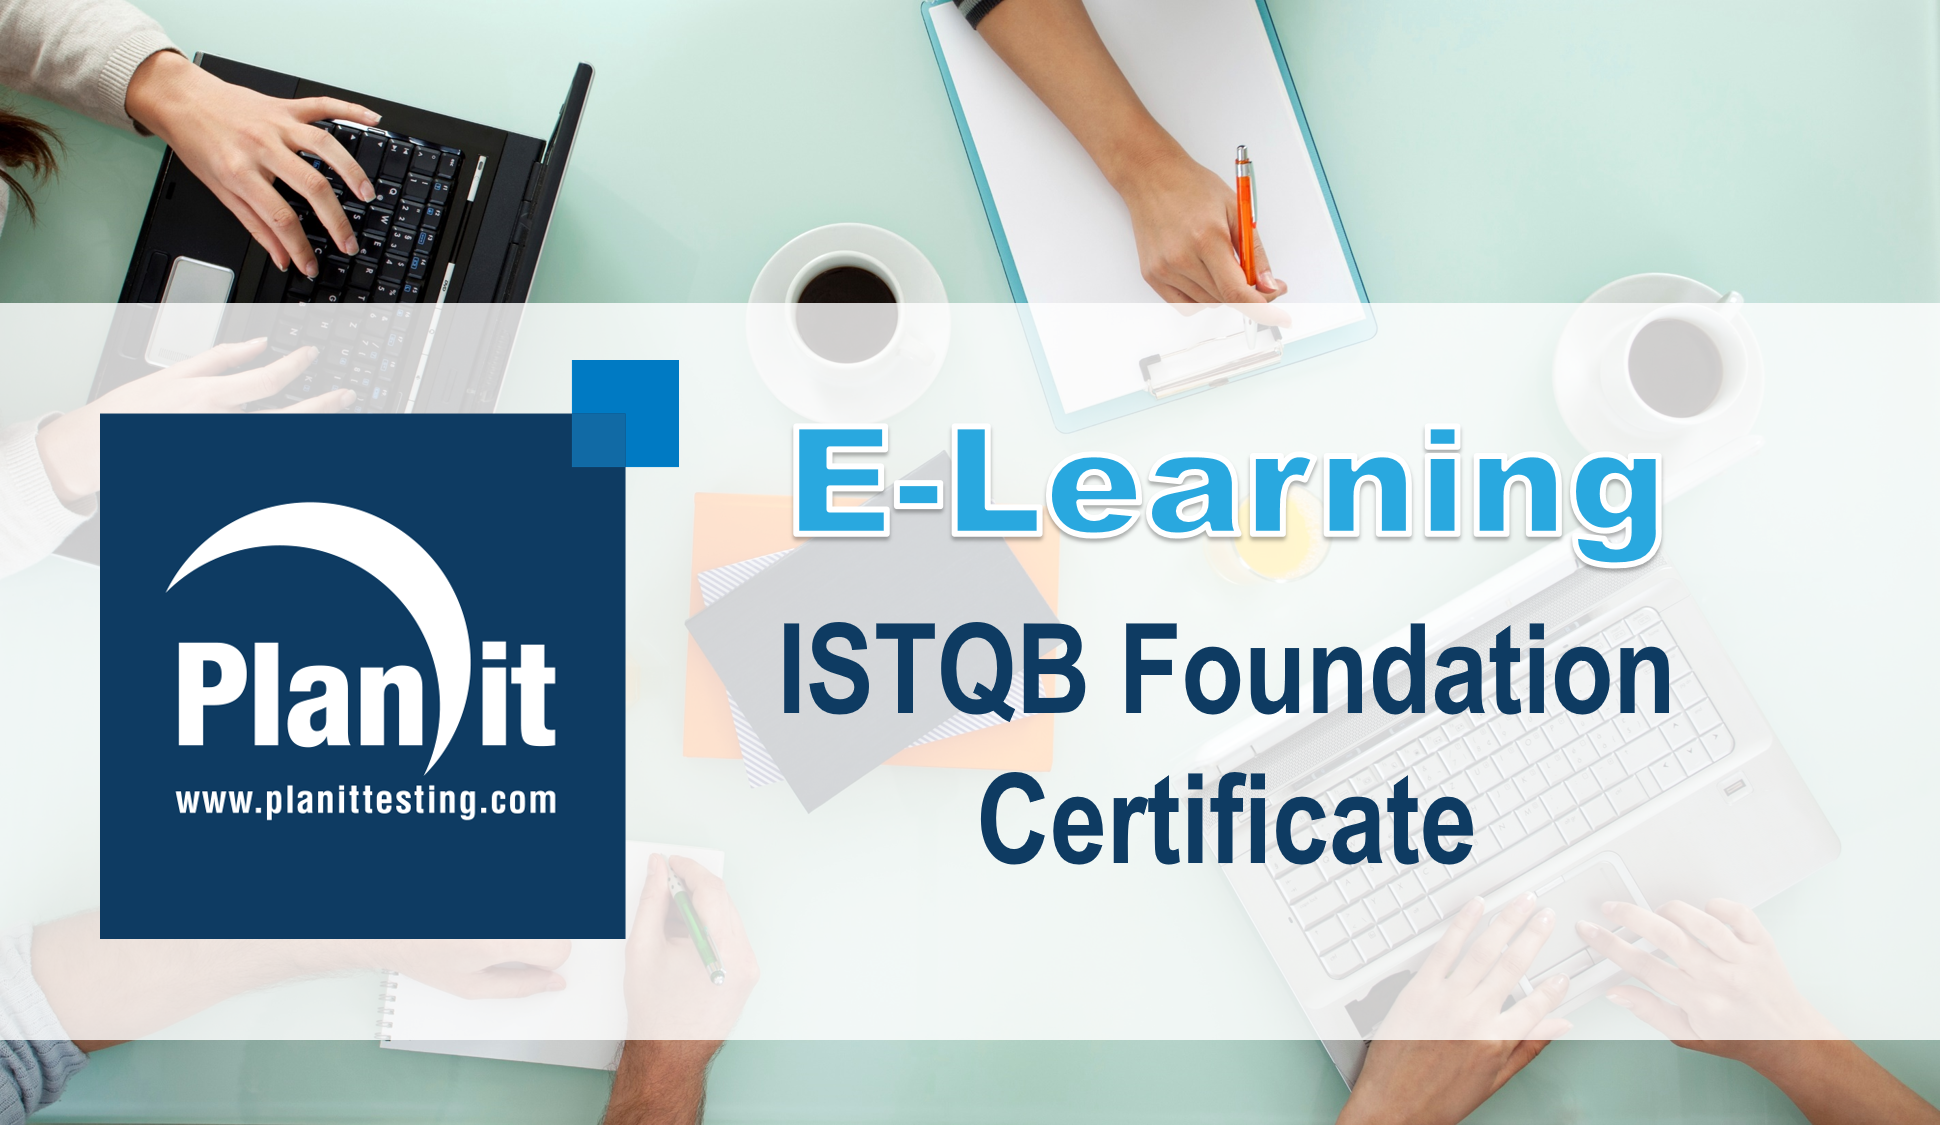 ISTQB Foundation Certificate - Introduction image